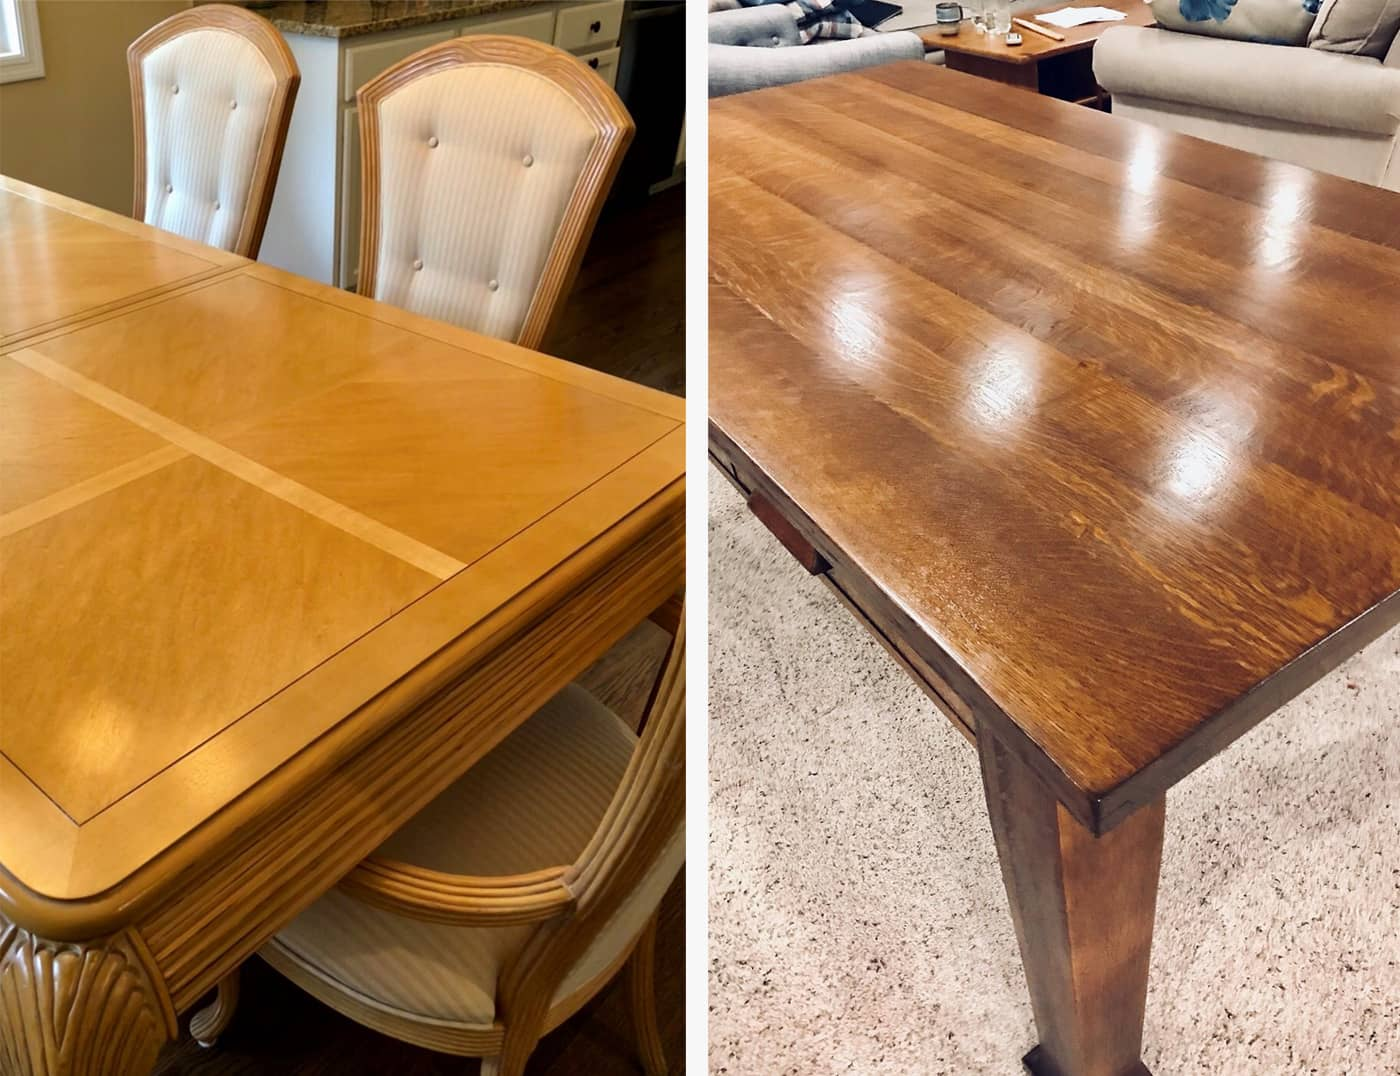 Furniture Restoration in Bloomington, MN